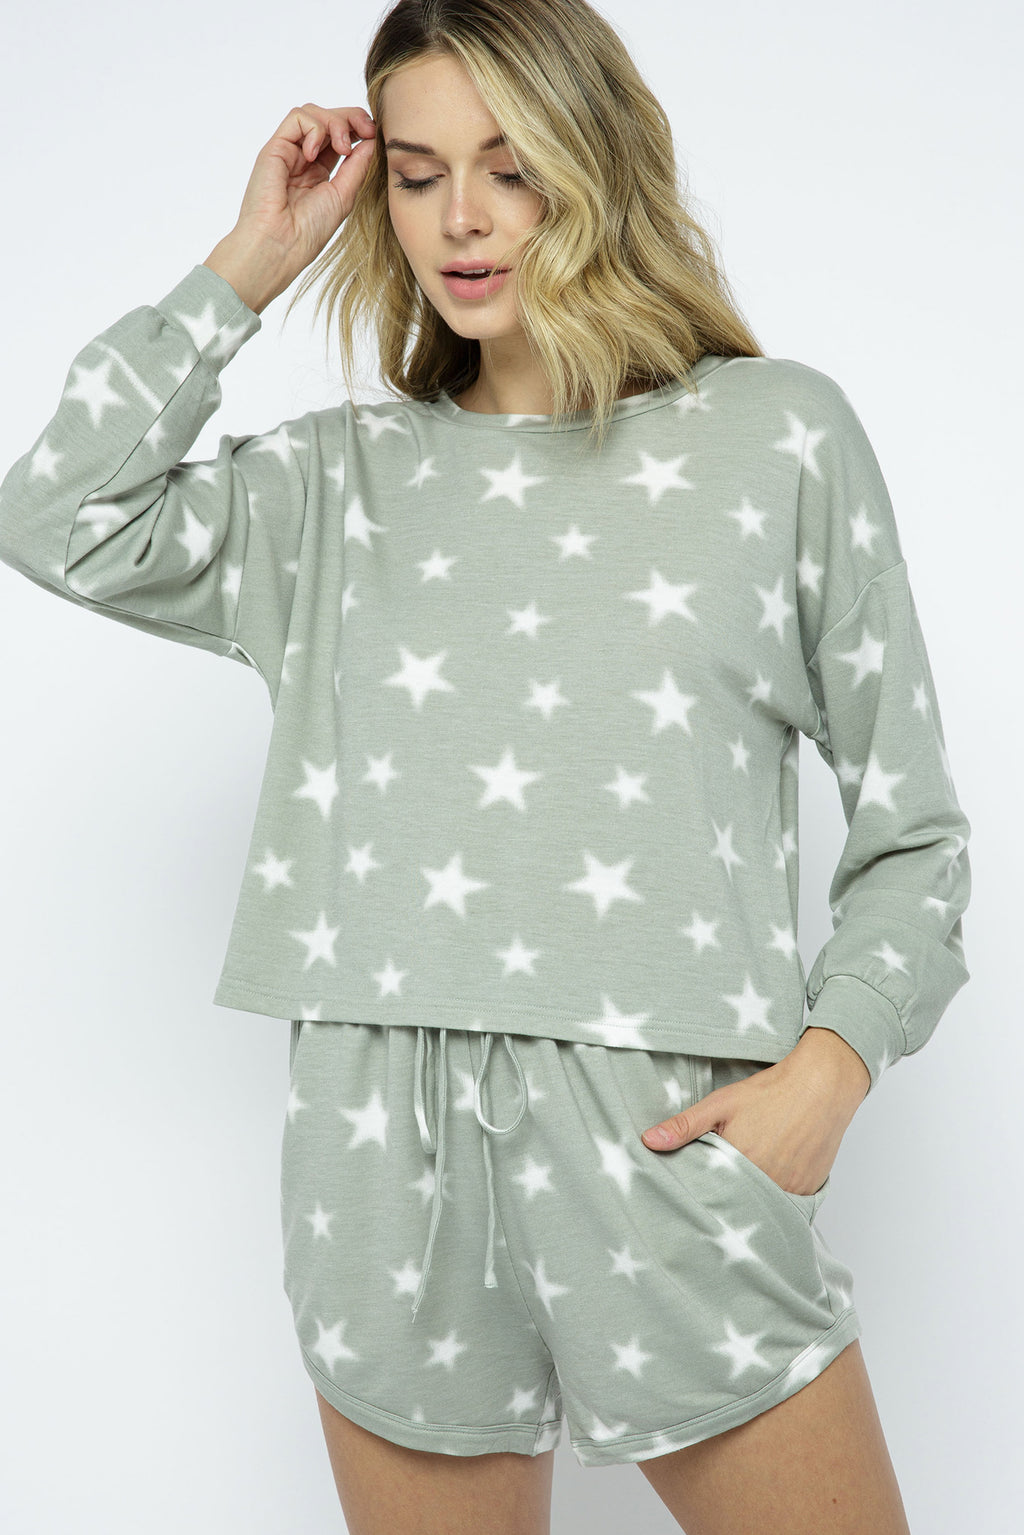 Starry Night Brushed Long Sleeve Top - honey